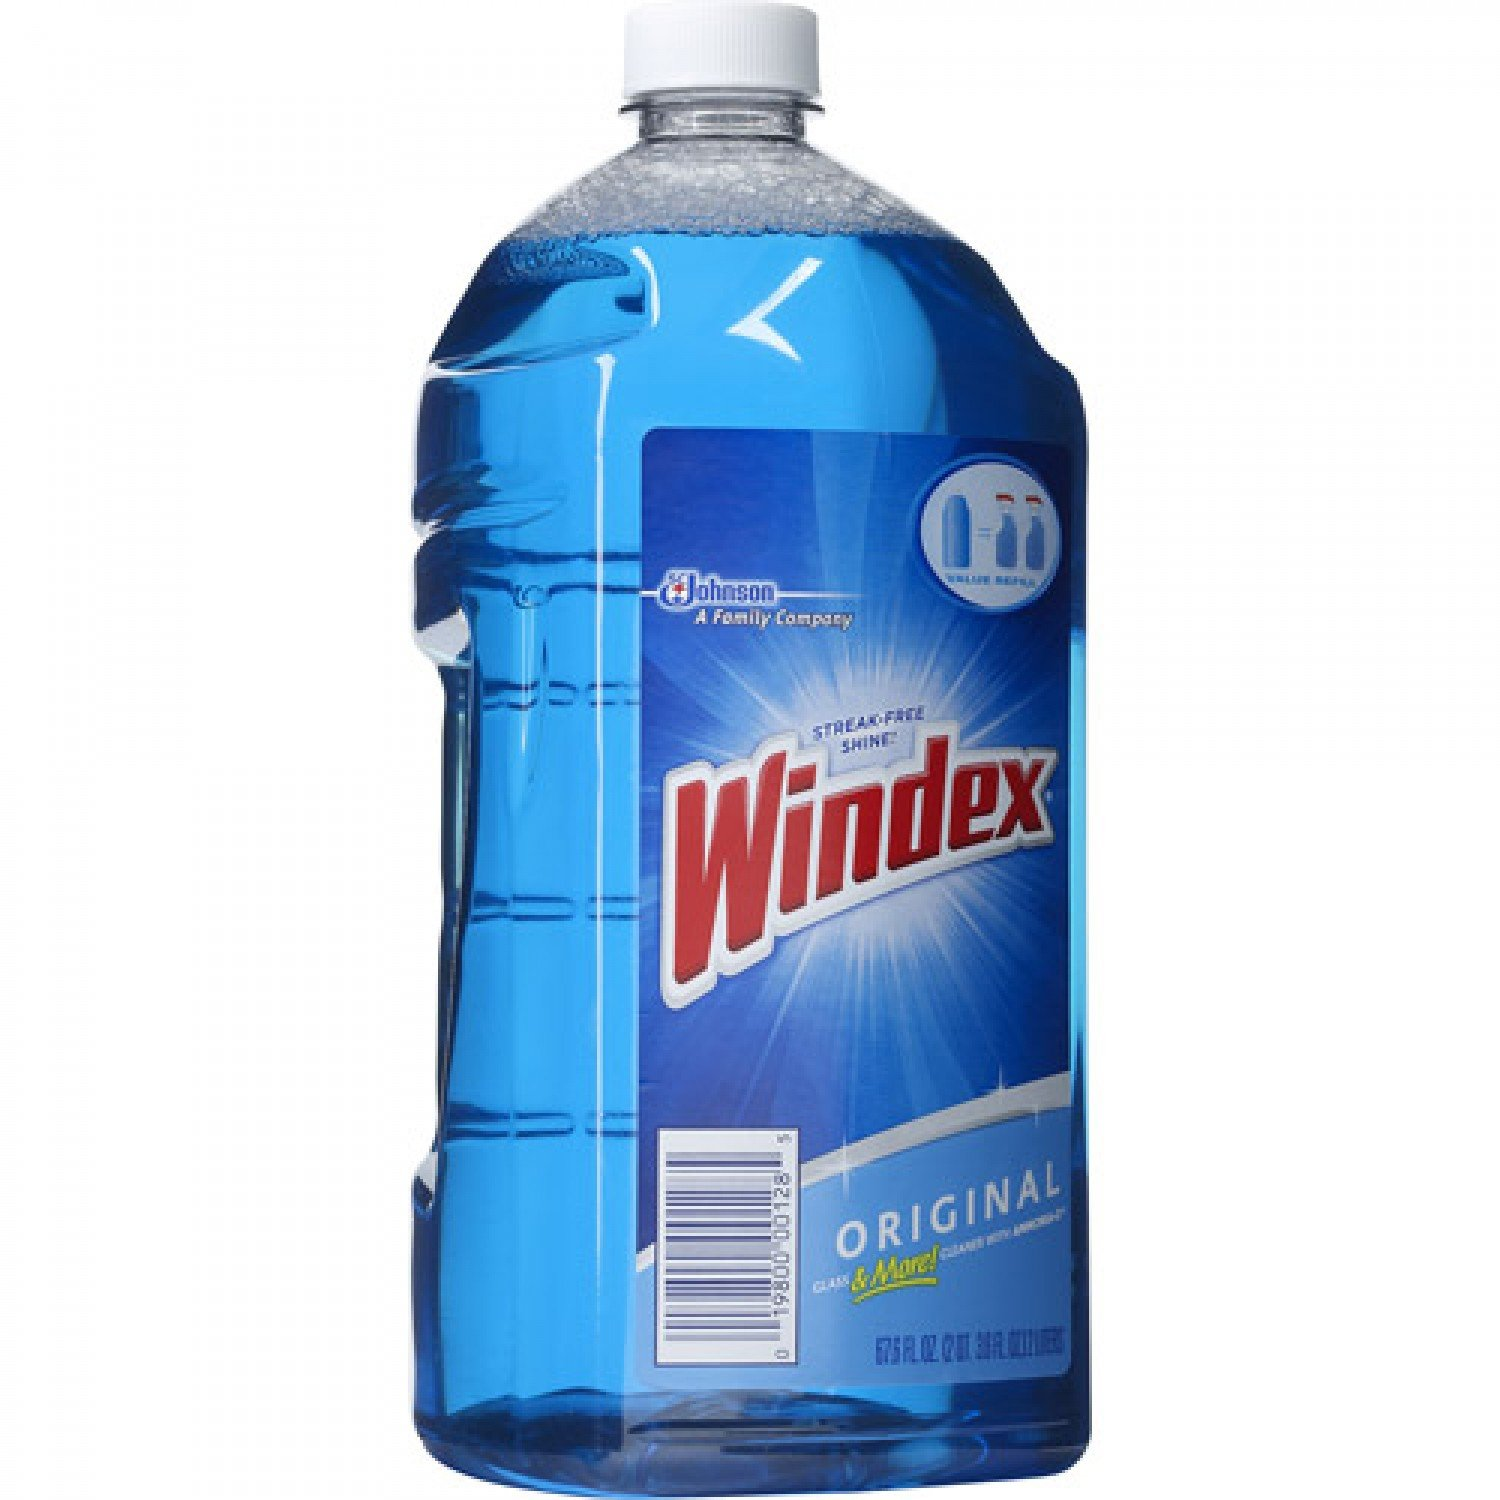 Windex Cleaner Window Refill 67.6-Ounce (2 Liter) Bottles (Pack of 6)